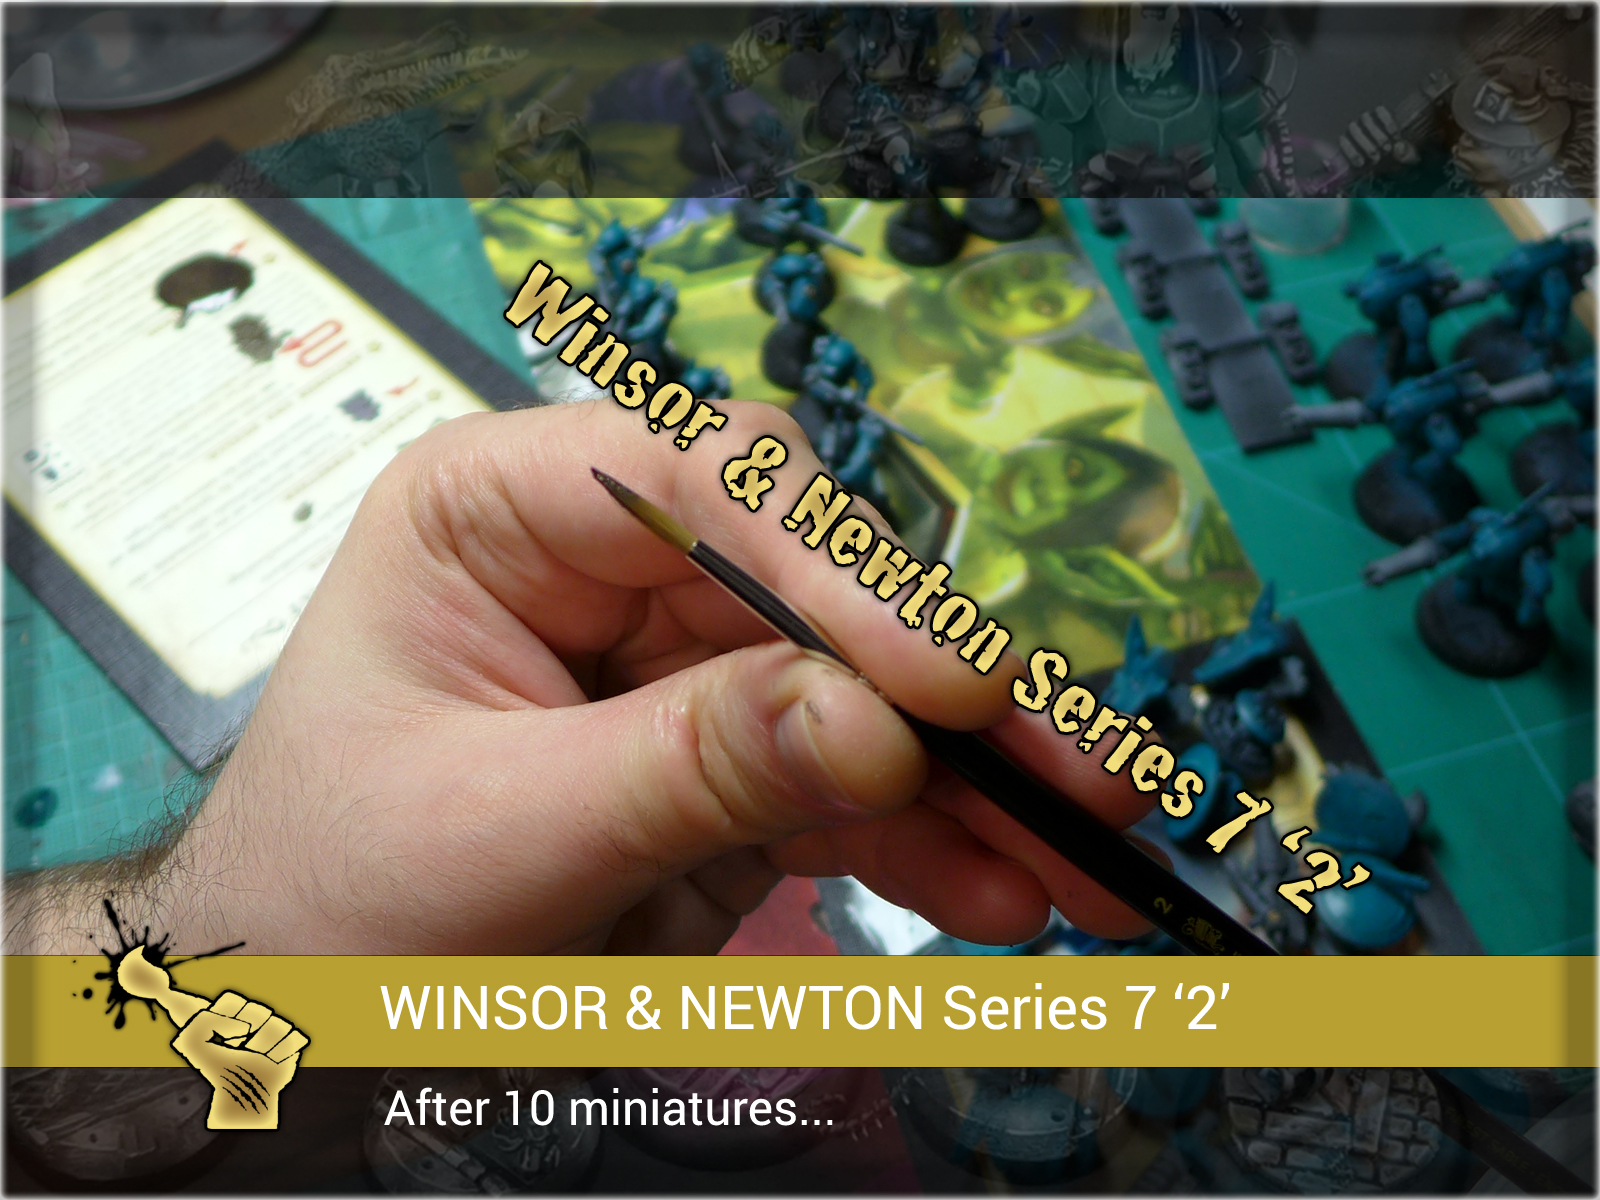 Winsor and Newton after 10